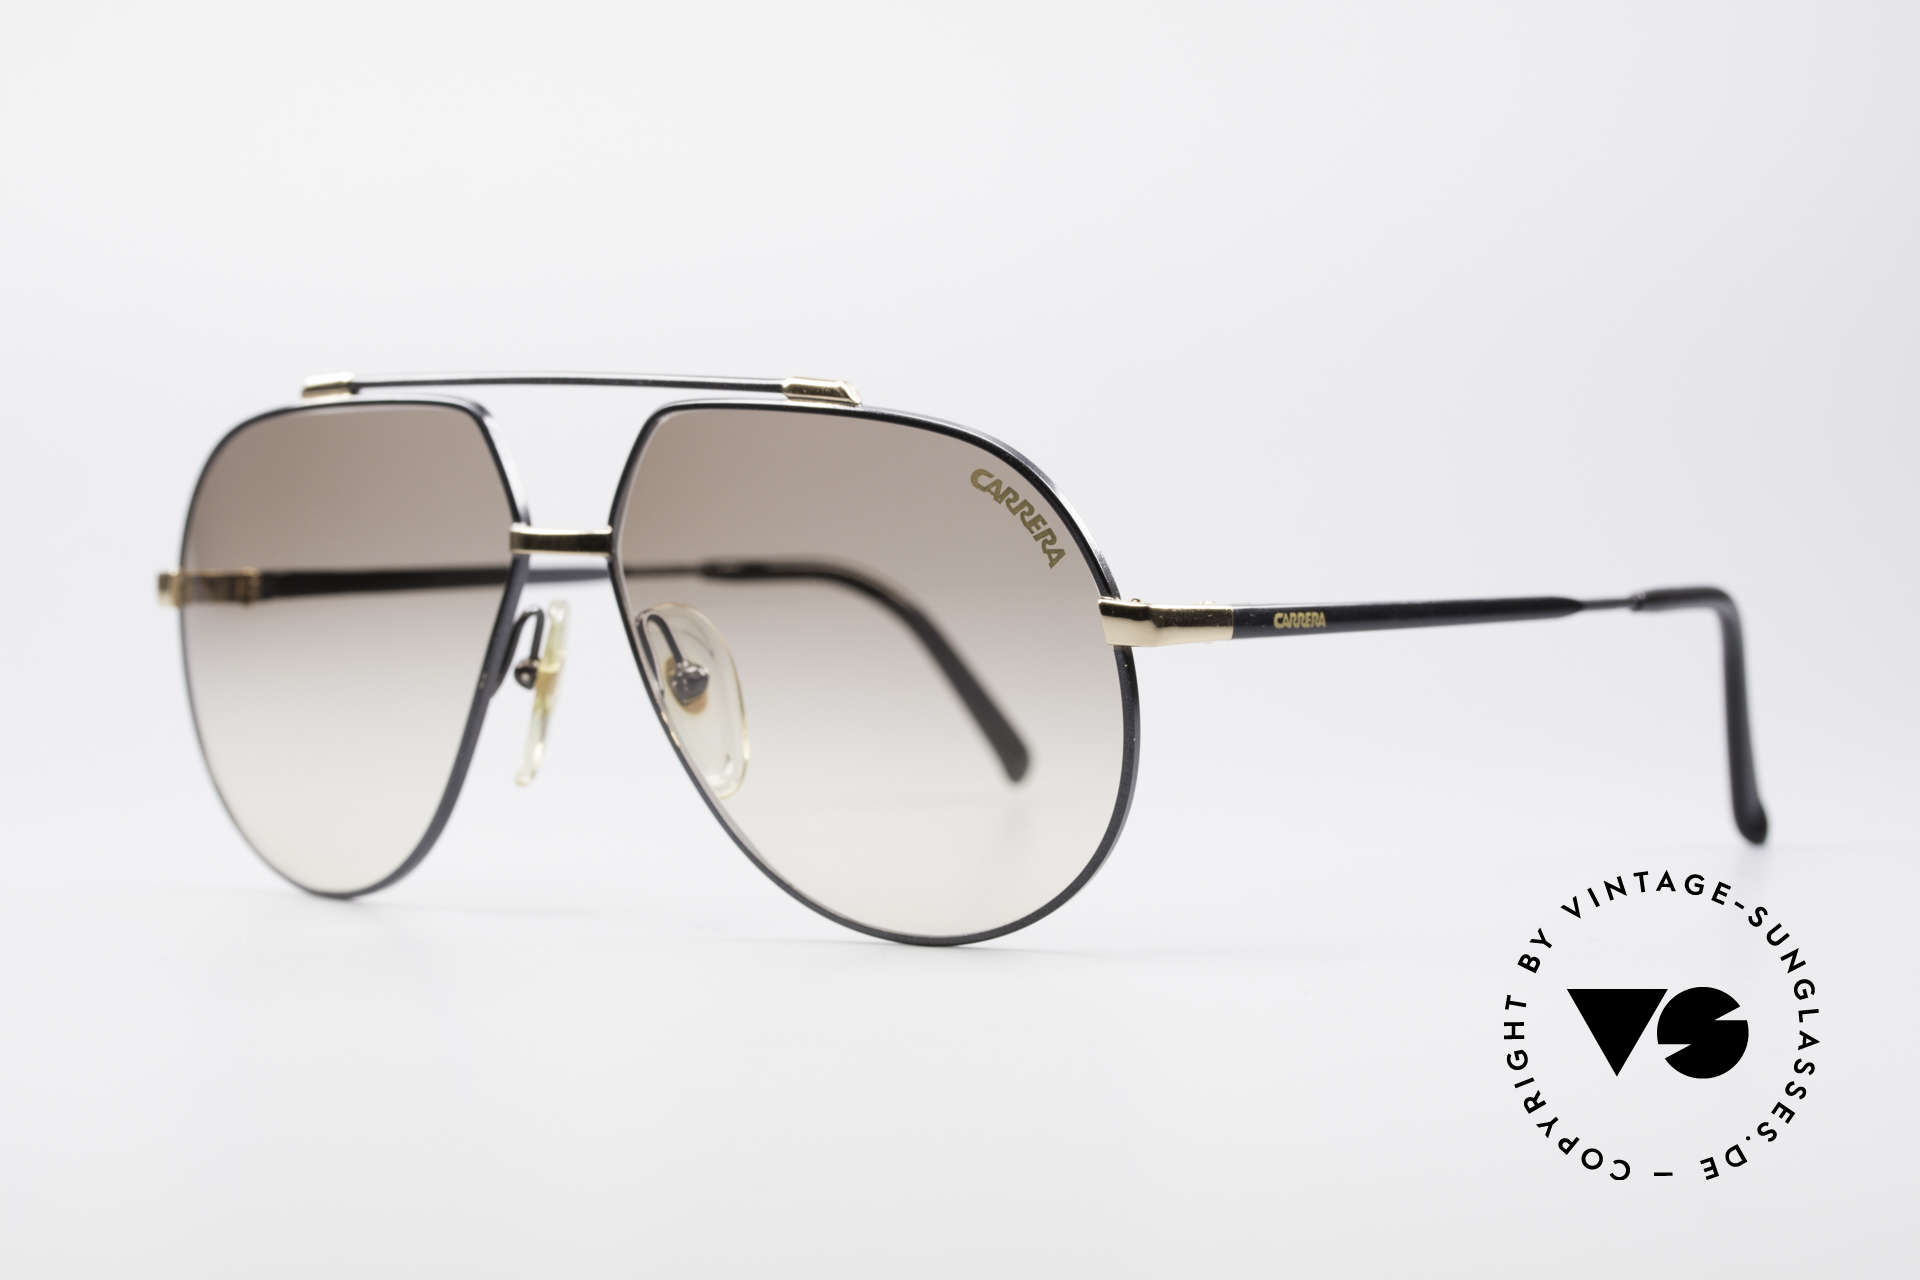 Carrera 5369 90's Men's Sunglasses, premium craftsmanship and very pleasantly to wear, Made for Men